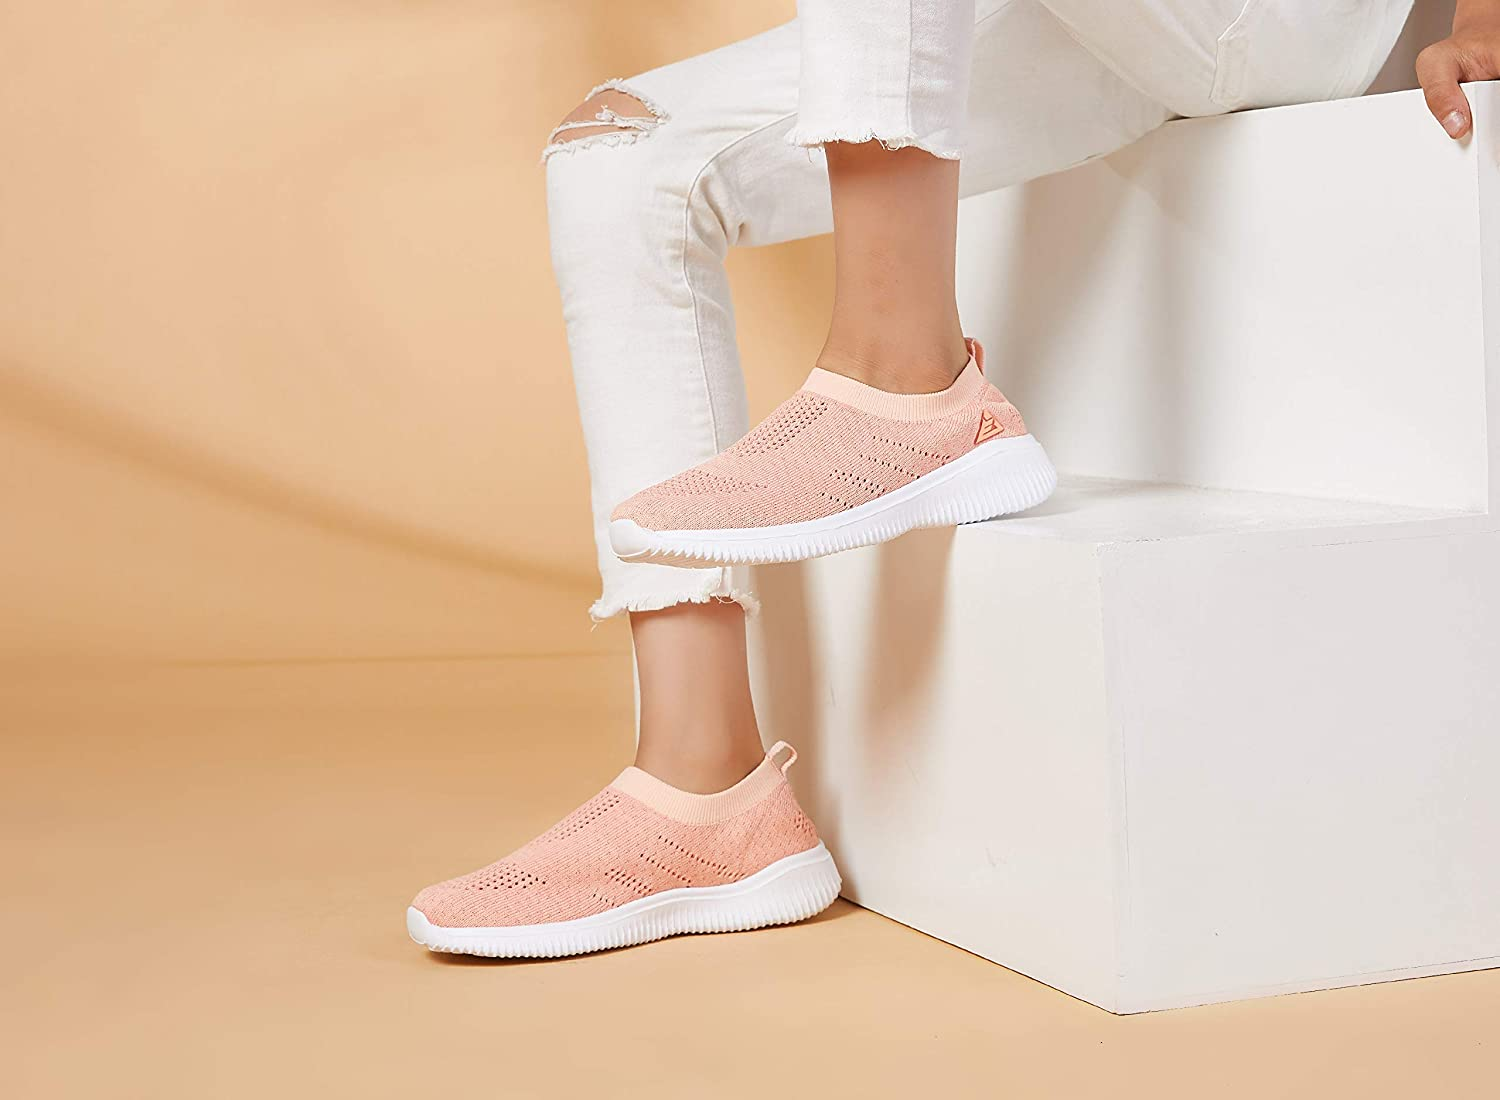 ALLY BELLY Boys Girls Walking Shoes Comfortable Casual Shoes Slip on Sneakers for Toddler Little Kid/…